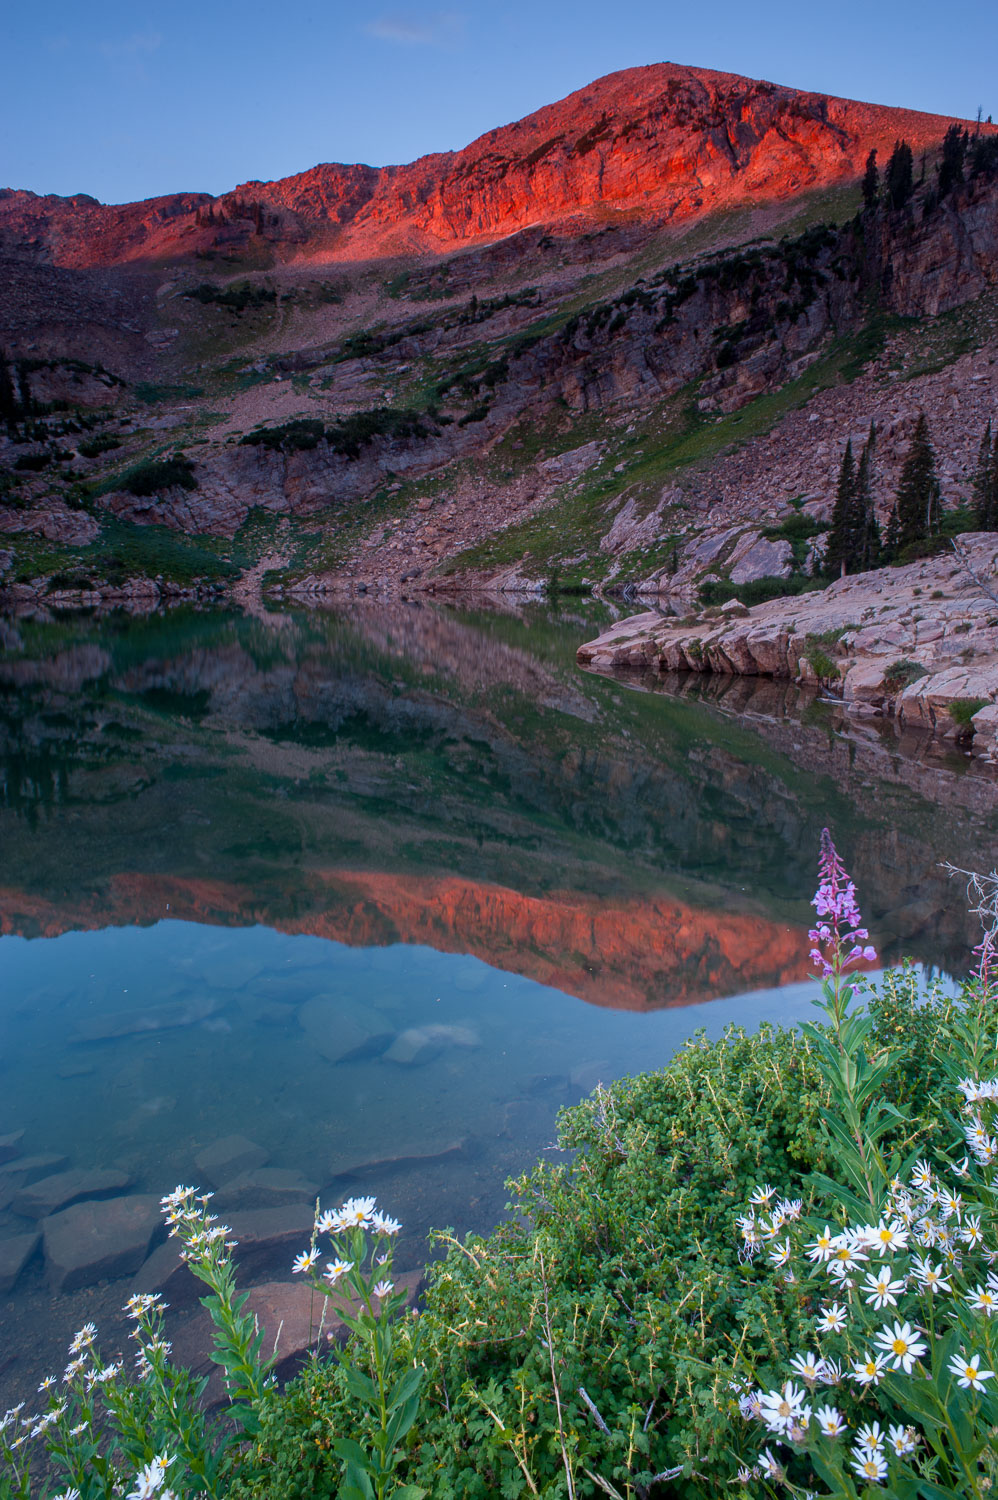 Cecret Lake and Sugarloaf Mountain at Sunrise, Wasatch Mountains